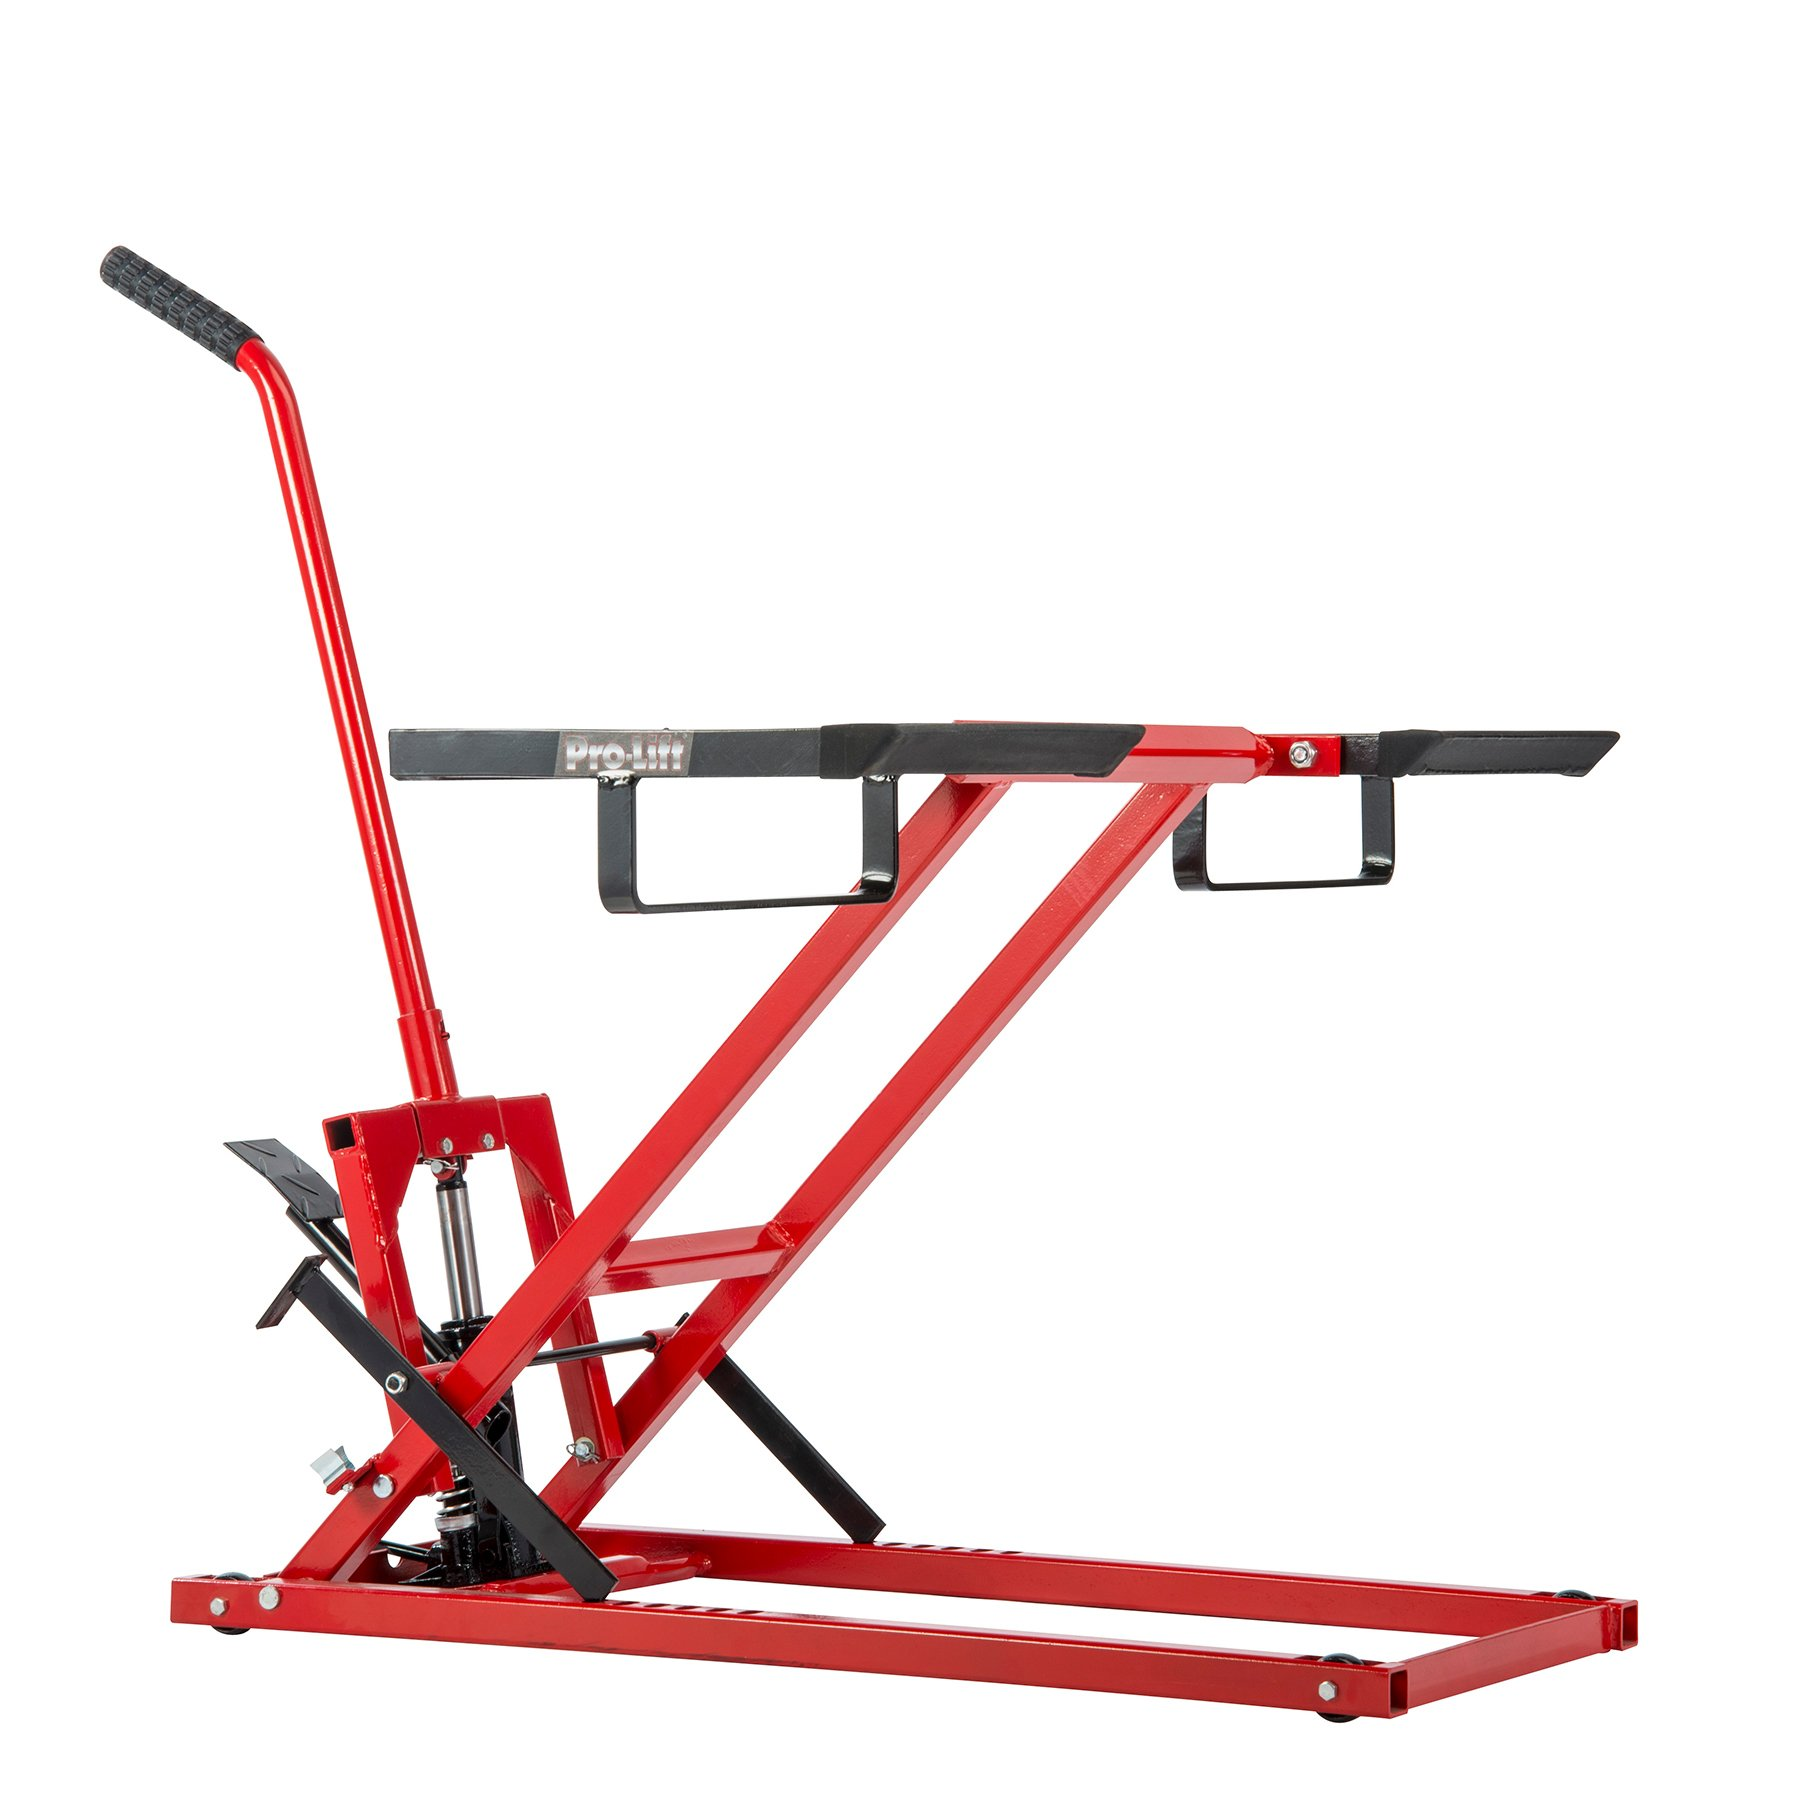 Pro Lift Lawn Mower Jack Lift with 300 Lbs Capacity for Tractors and Zero Turn Lawn Mowers by Pro-LifT